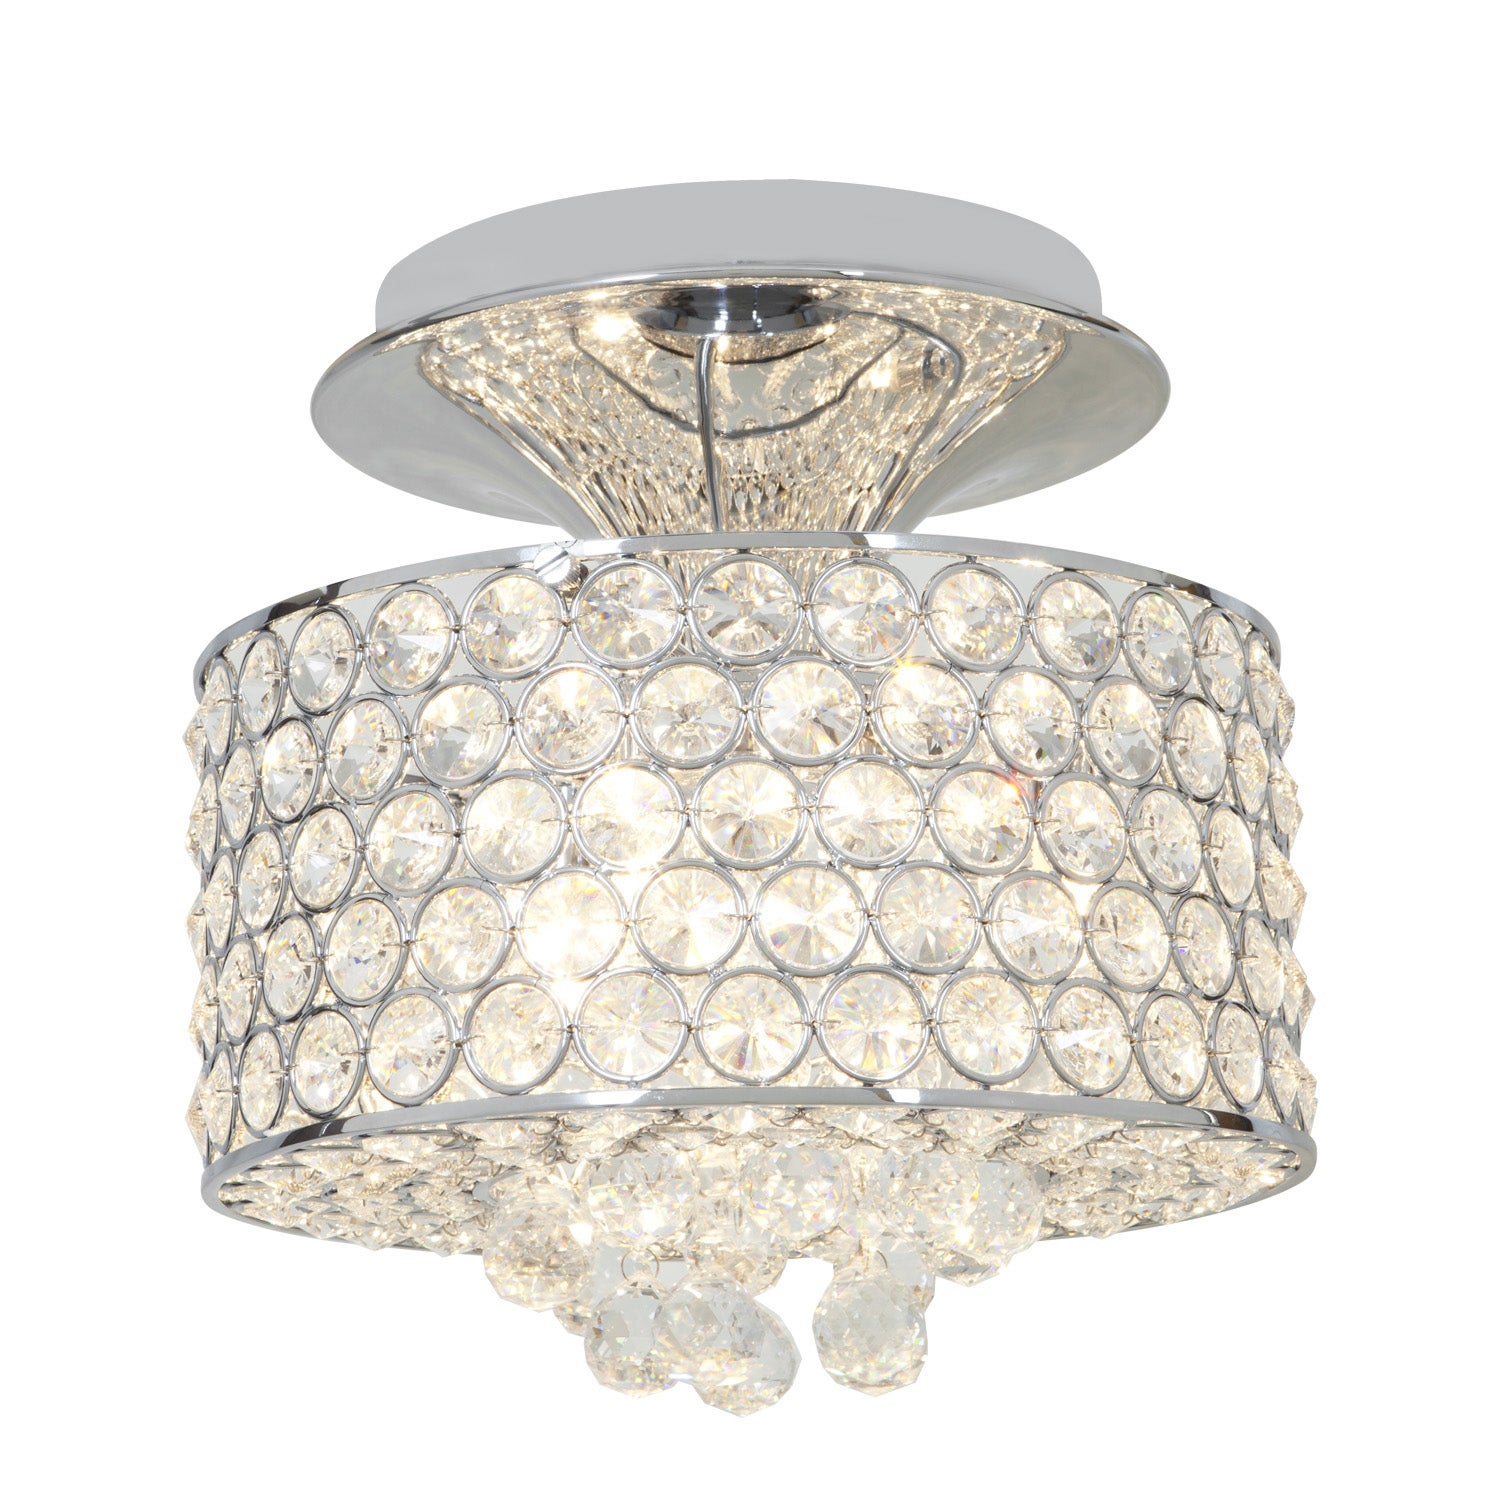 Access Kristal 3-light Chrome Semi-flush Drum Fixture